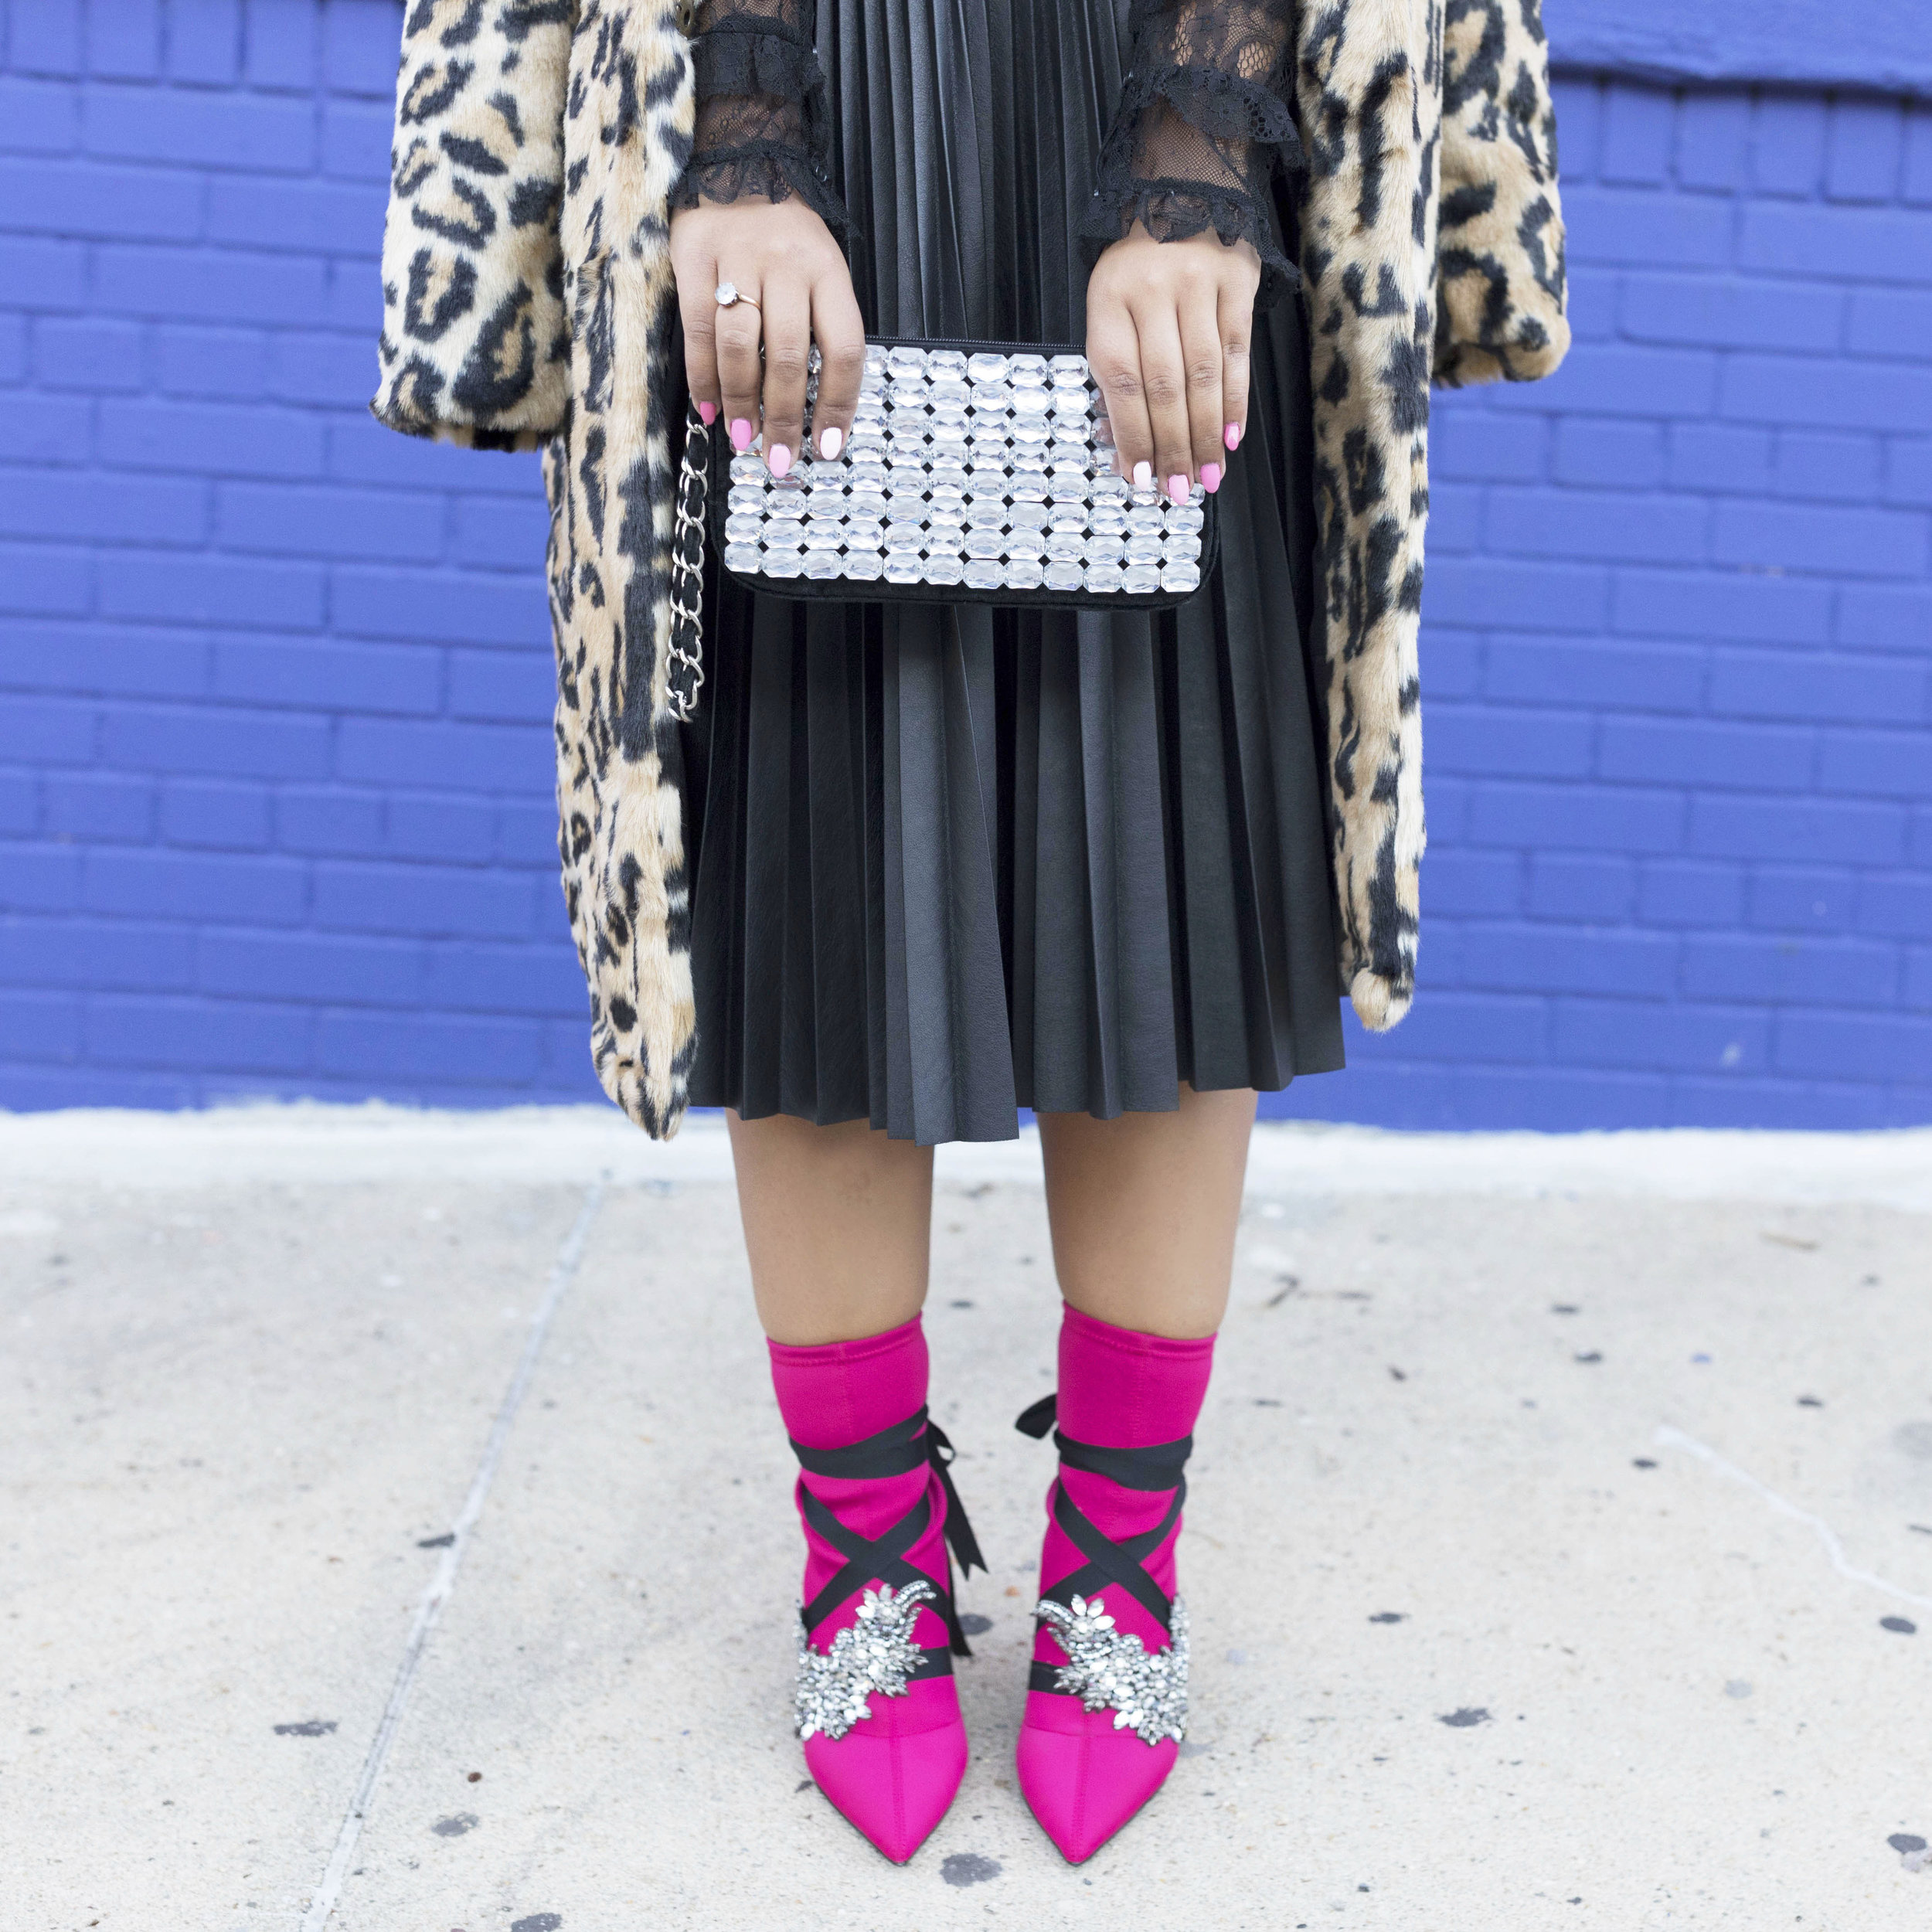 Krity S x Pink Sock Boots x Party Look 5.jpg